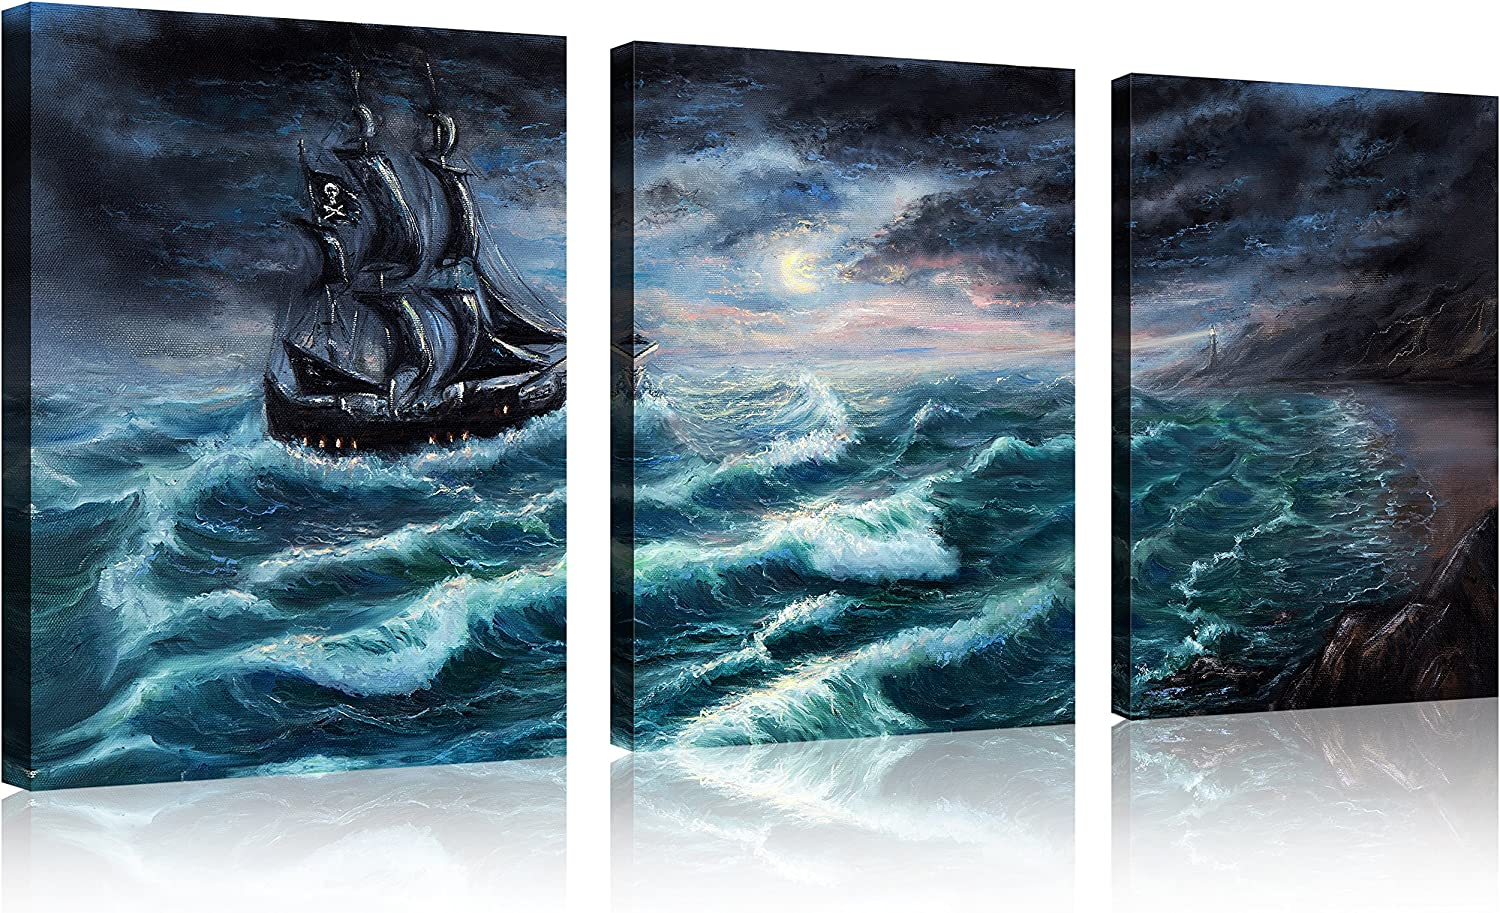 """QICAI 3 Panel Pirate Ship Canvas Print 12""""x16"""" Pirate Canvas Pirate Canvas Art Sailboat Pictures for Home Decor Wave Sailboat Wall Art Seascape the Picture for Home Decor Decoration, Ready to Hang"""